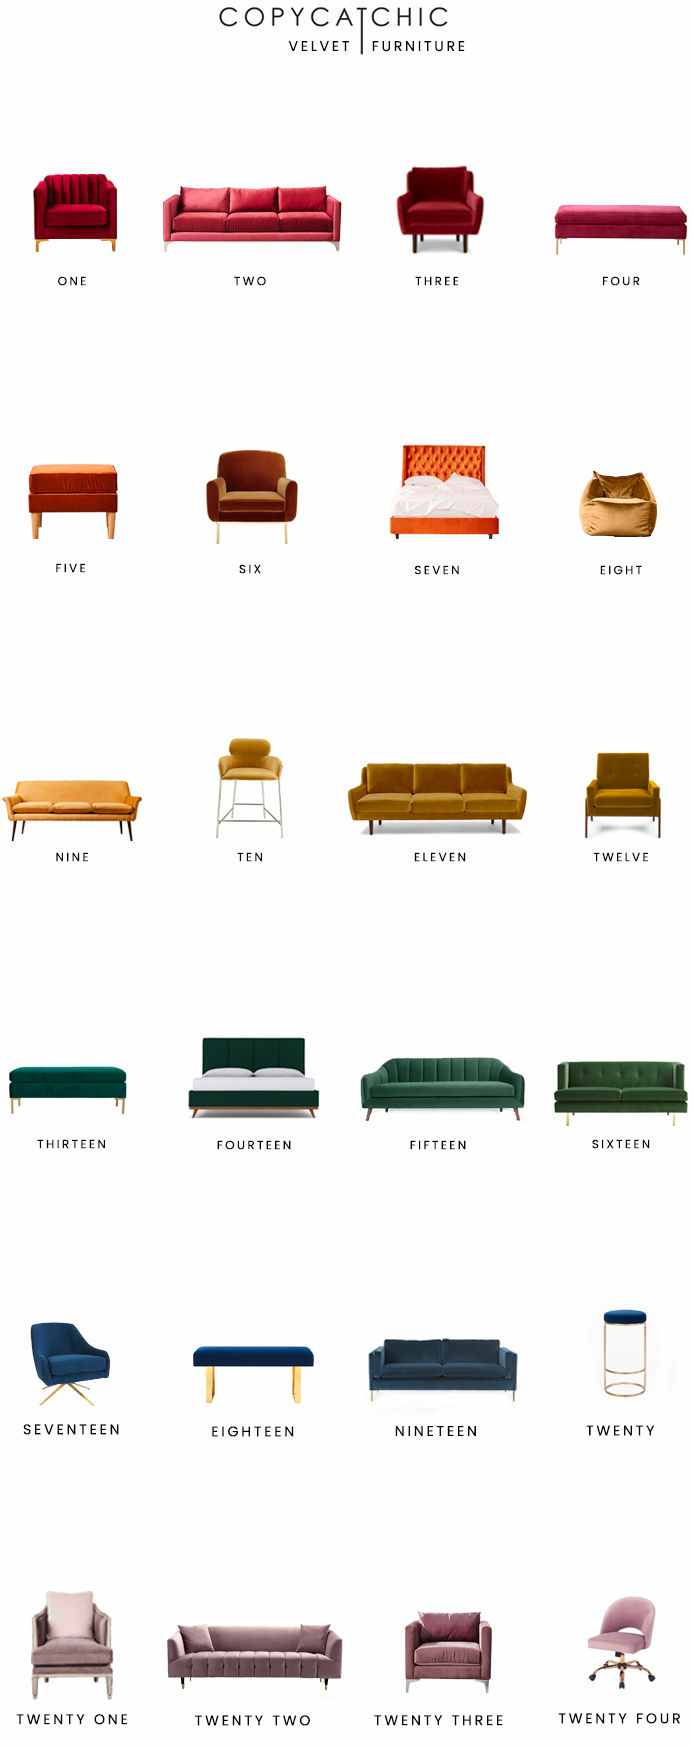 velvet furniture for less, copycatchic luxe living for less, budget home decor and design, daily finds, home trends, sales, budget travel and room redos